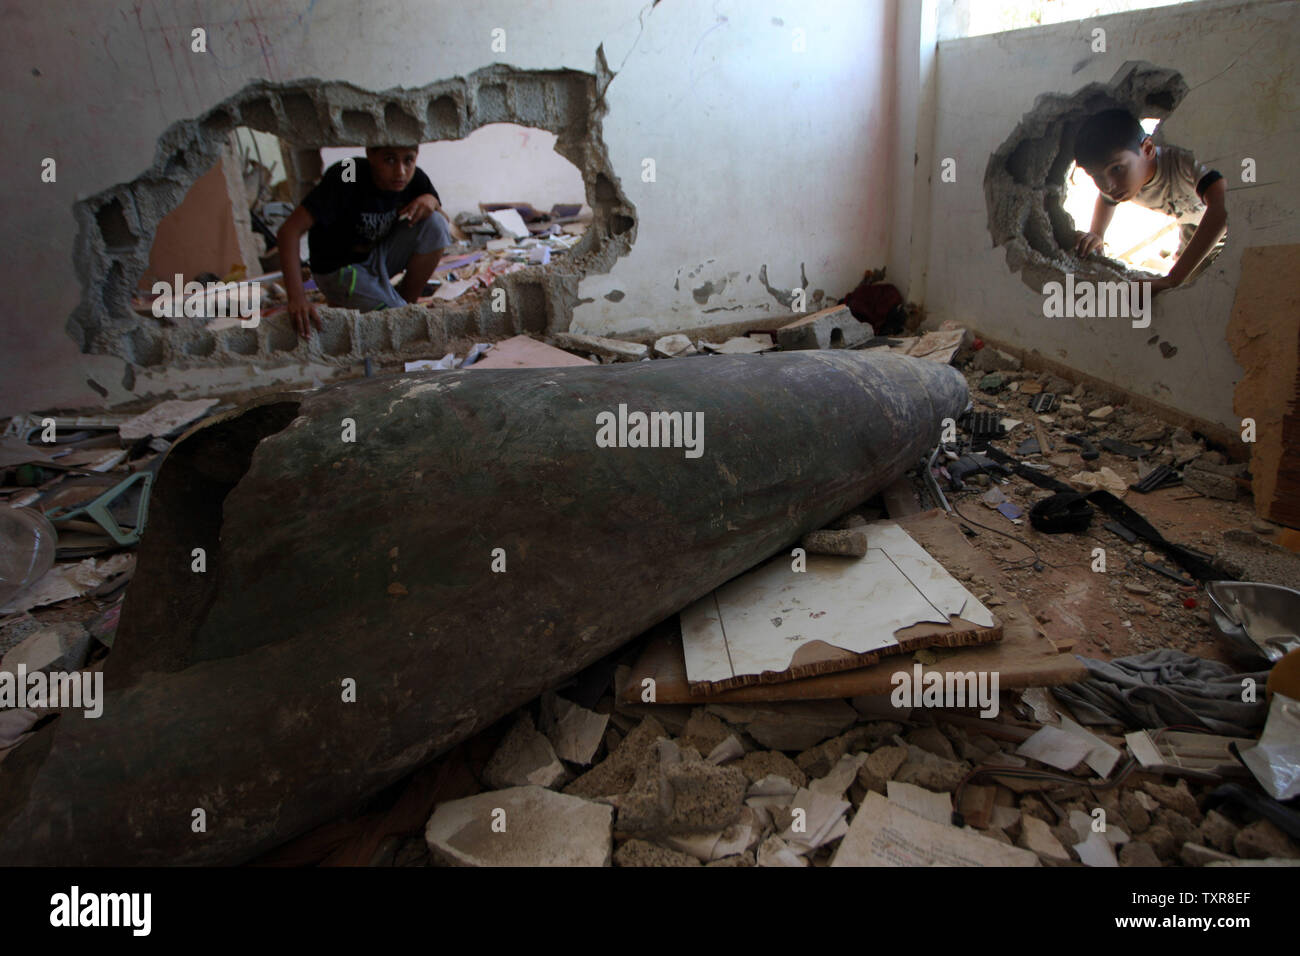 A Palestinian boys looks at a missile which witnesses said was fired by Israeli aircraft, in their flat in the destroyed Nada Towers During Cease-Fire between Gaza and Israel,  in the town of Beit Lahiya, northern Gaza Strip, August. 12, 2014. UPI/Ismael Mohamad Stock Photo